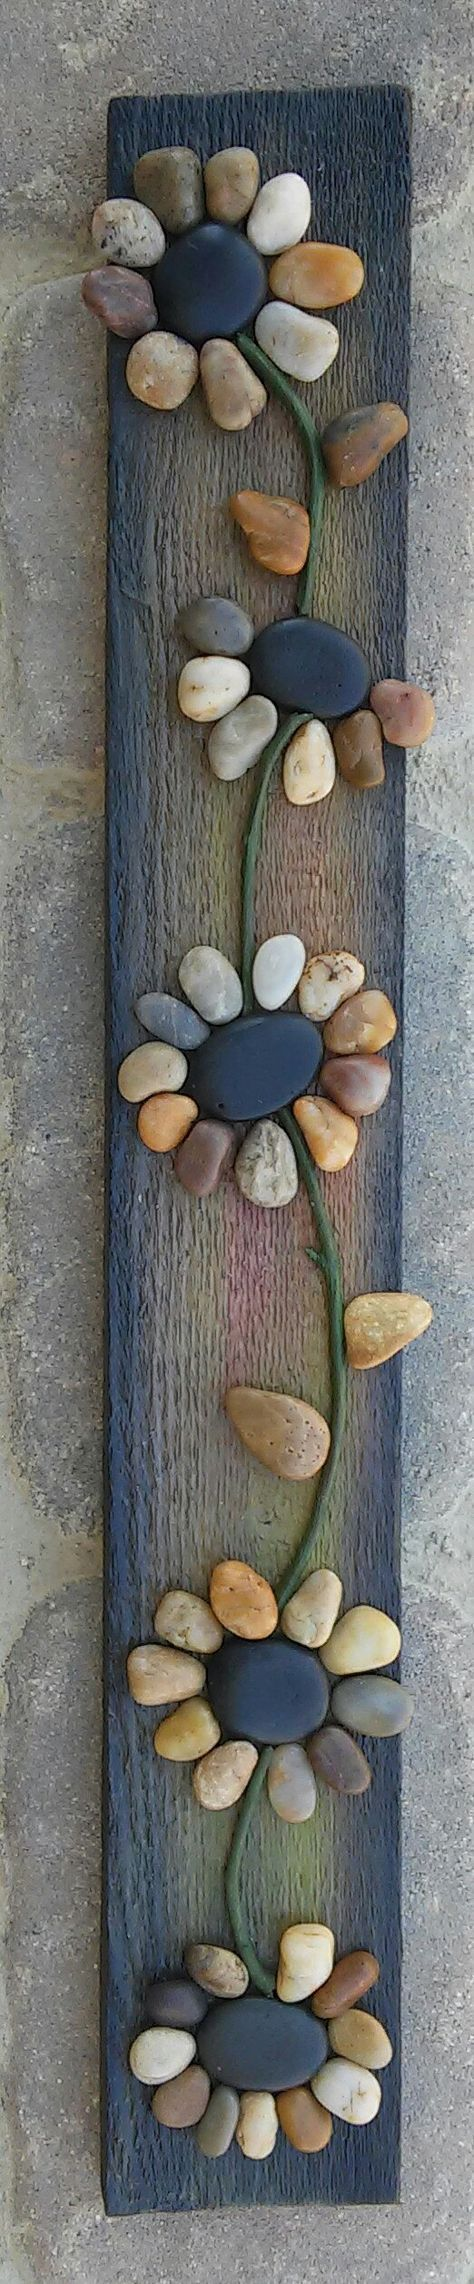 Pebble Art / Rock Art string of flowers (all natural materials incl. reclaimed wood, pebbles, twigs) approx 24x4.  FREE SHIPPING